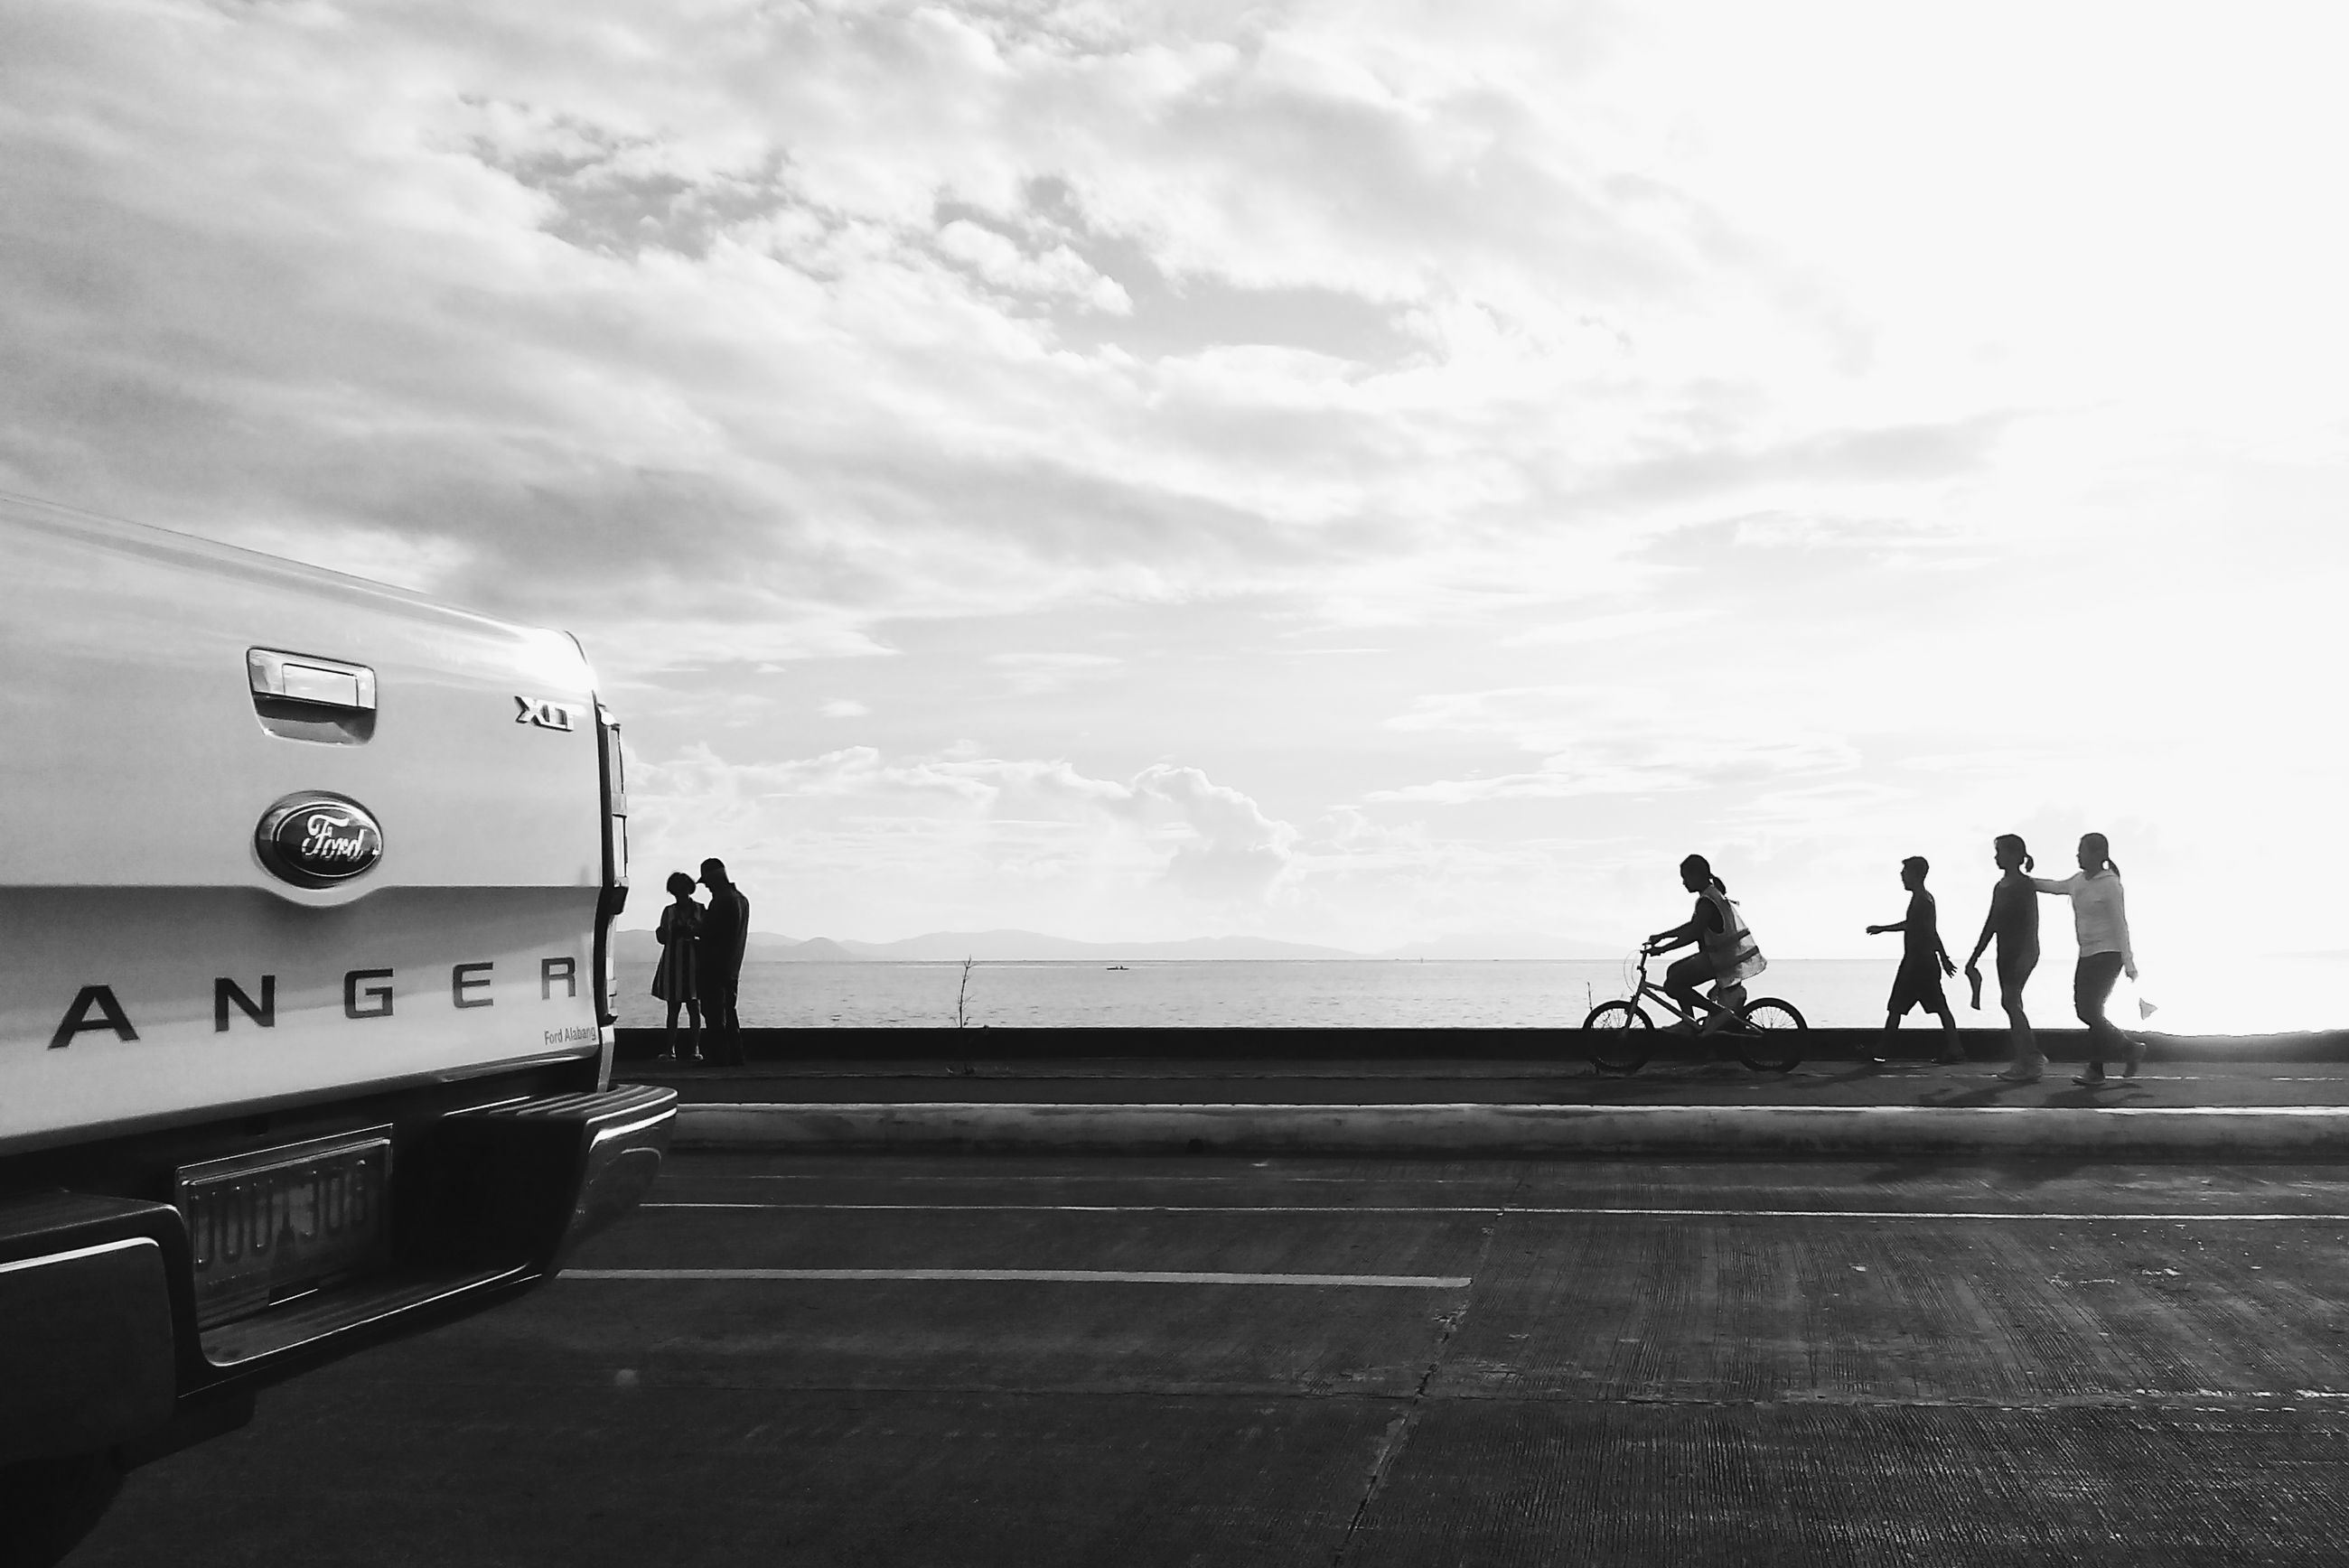 transportation, road, sky, group of people, cloud, city, city life, sea, day, outdoors, journey, cloud - sky, ocean, tourism